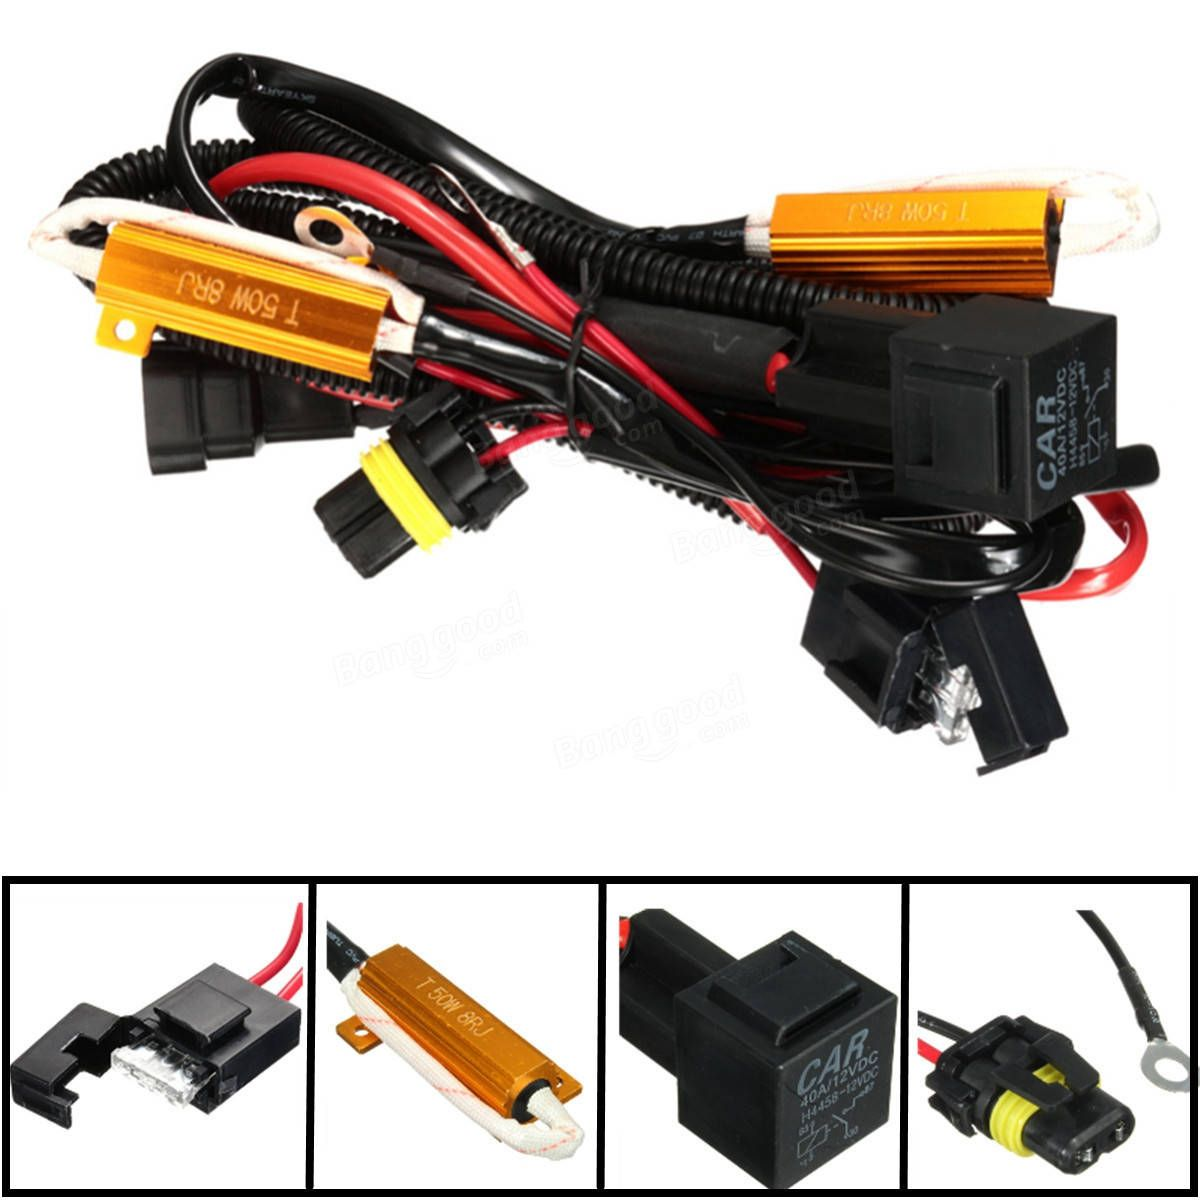 US$9.99] 40A Relay Wiring Harness 50W Load Resistor H1 H7 ... on transistor wiring, headlight connector wiring, fog light wiring, ignition coil wiring, distributor wiring, phone line wiring, 12v dc wiring, tail light wiring, headlight wiring diagram, headlight wiring harness, combination switch wiring, headlight bulb wiring, trailer brake wiring, dimmer switch wiring, high low headlight wiring, motor control wiring, diode wiring, electric motor wiring, 3 wire headlight wiring, ignition switch wiring,